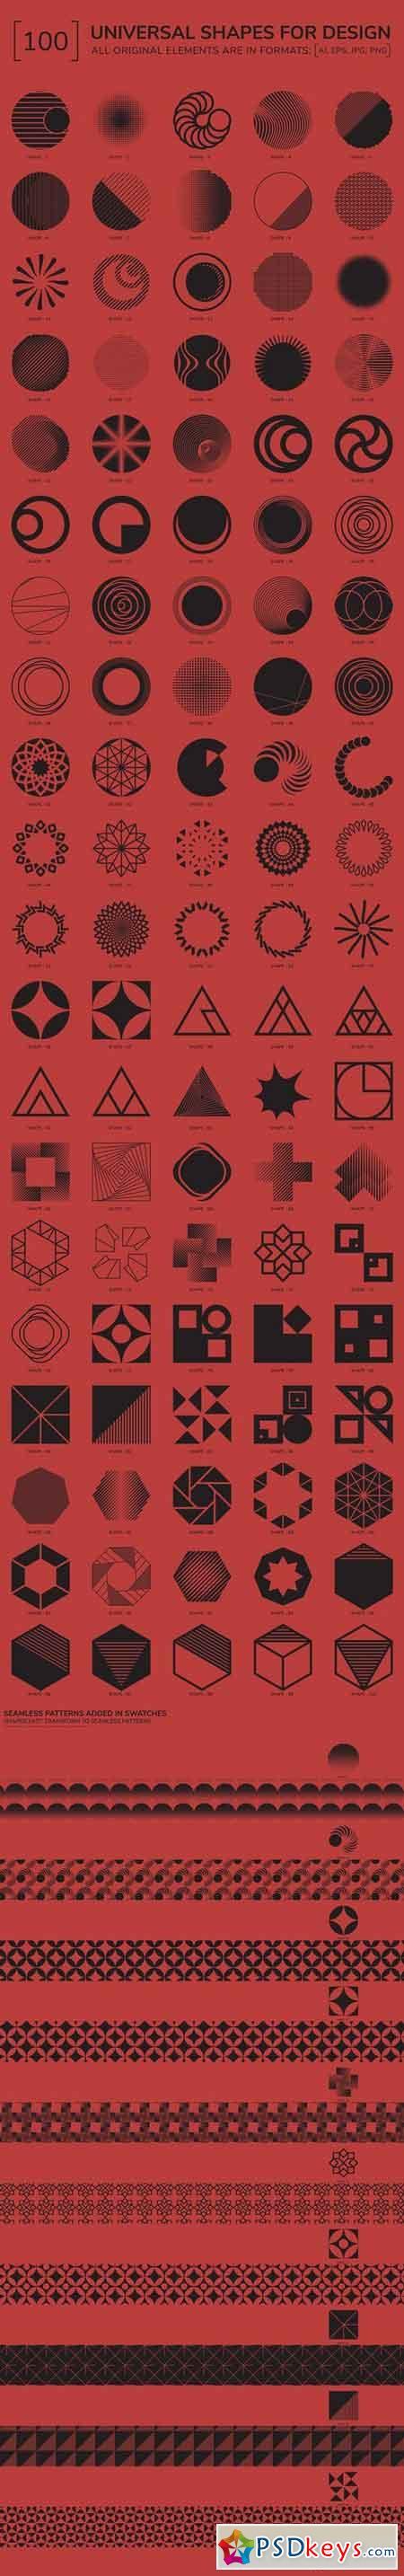 100 Geometric Shapes. Part 3 2108860